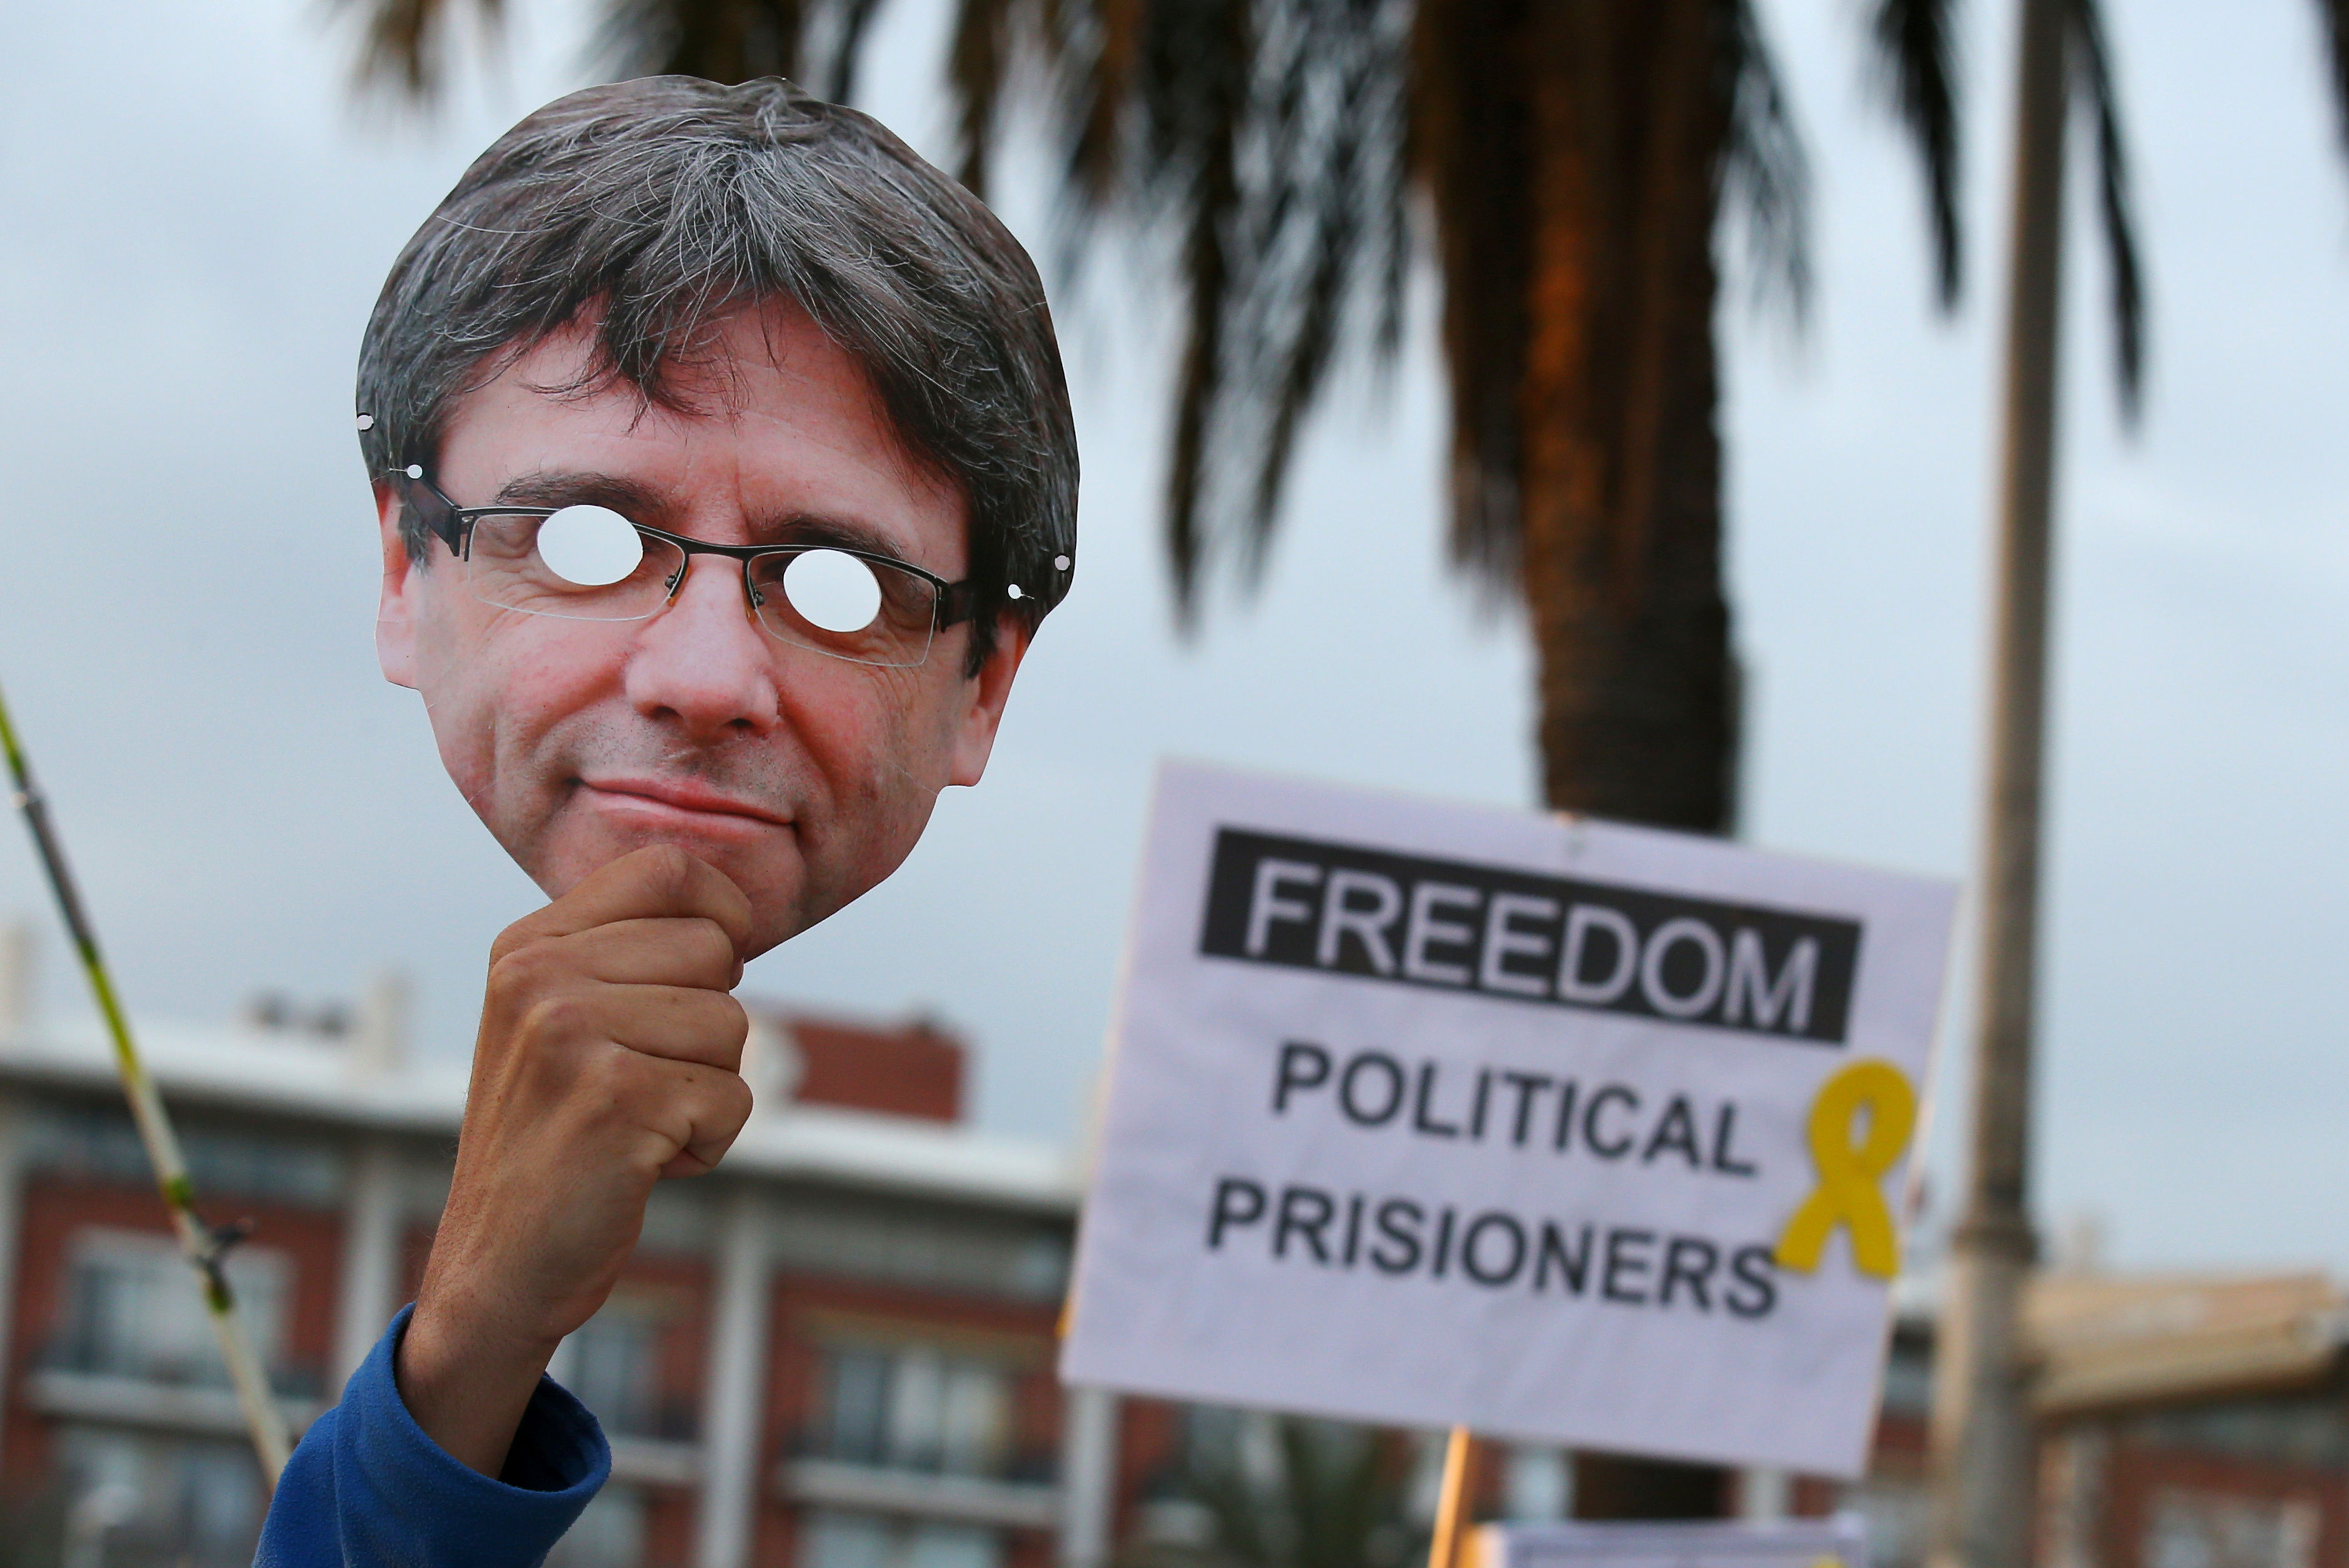 A man raises up a Puigdemont's mask during a protest in front of Germany's Consulate after former president Carles Puigdemont was detained in Germany, during a demonstration held by pro-independence associations in Barcelona, Spain March 25, 2018. REUTERS/Albert Gea - RC1A4D55B180